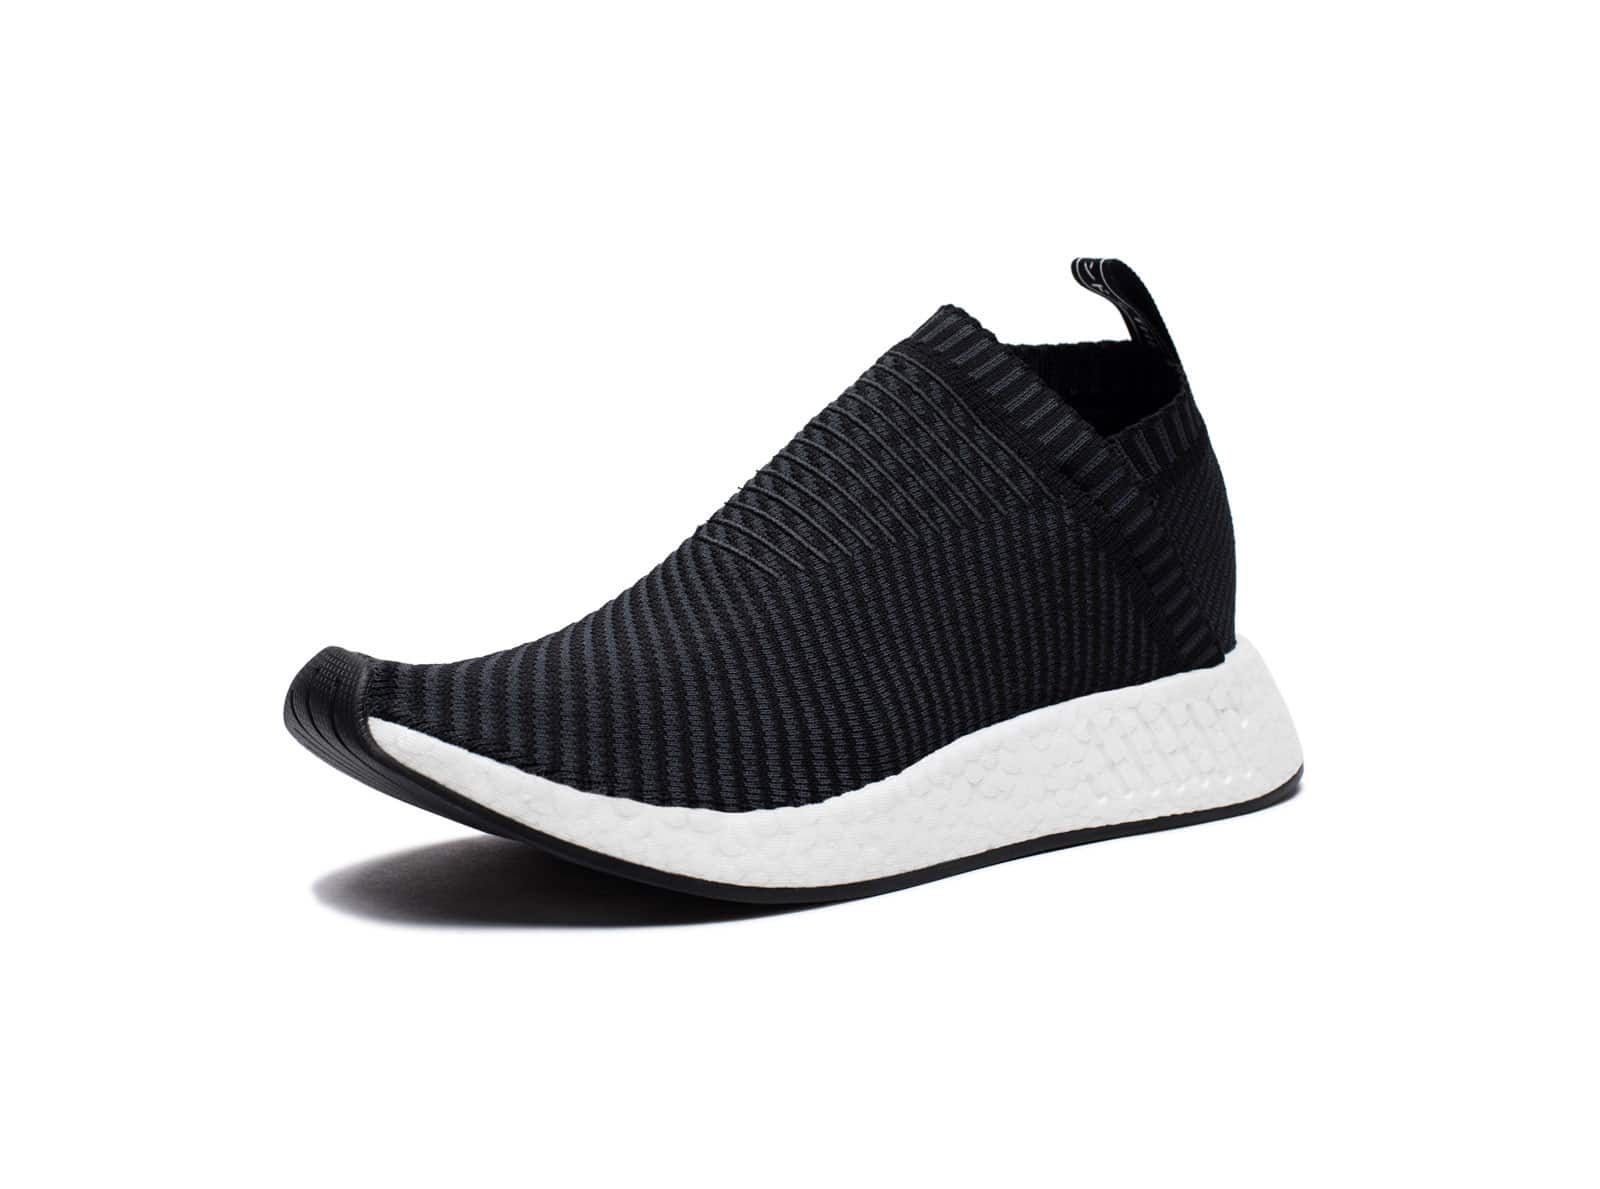 huge discount c7256 8ebe0 NMD CS2 PK - BLACK/CARBON/REDSLD | Undefeated